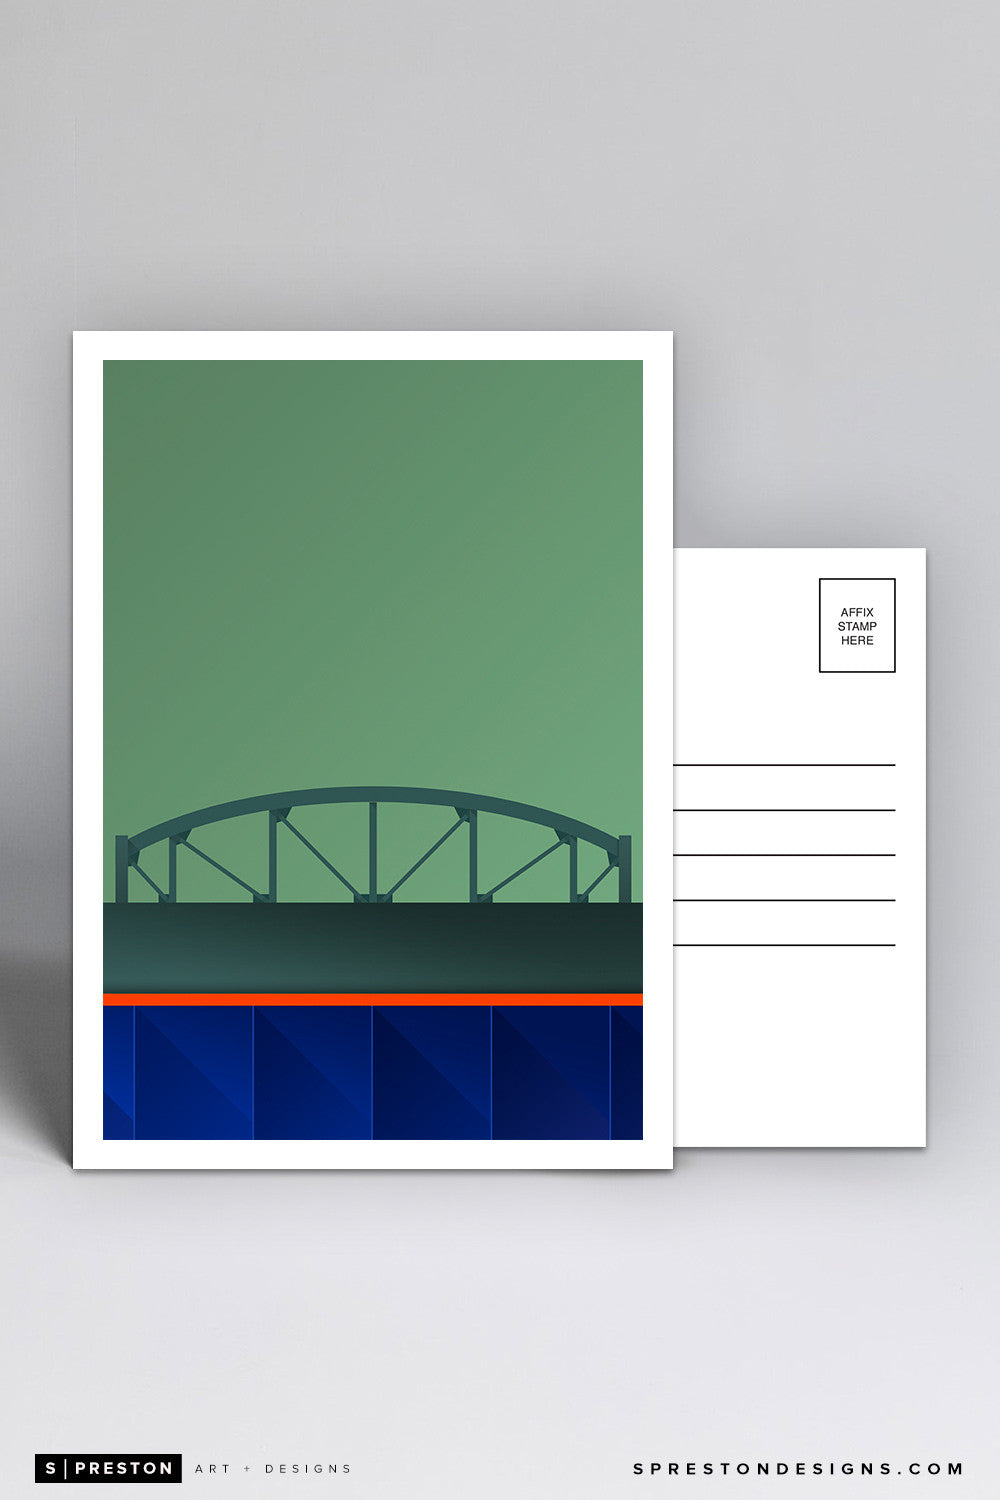 Minimalist Citi Field Postcard (Shea Bridge) Postcard - New York Mets - S. Preston Art + Designs